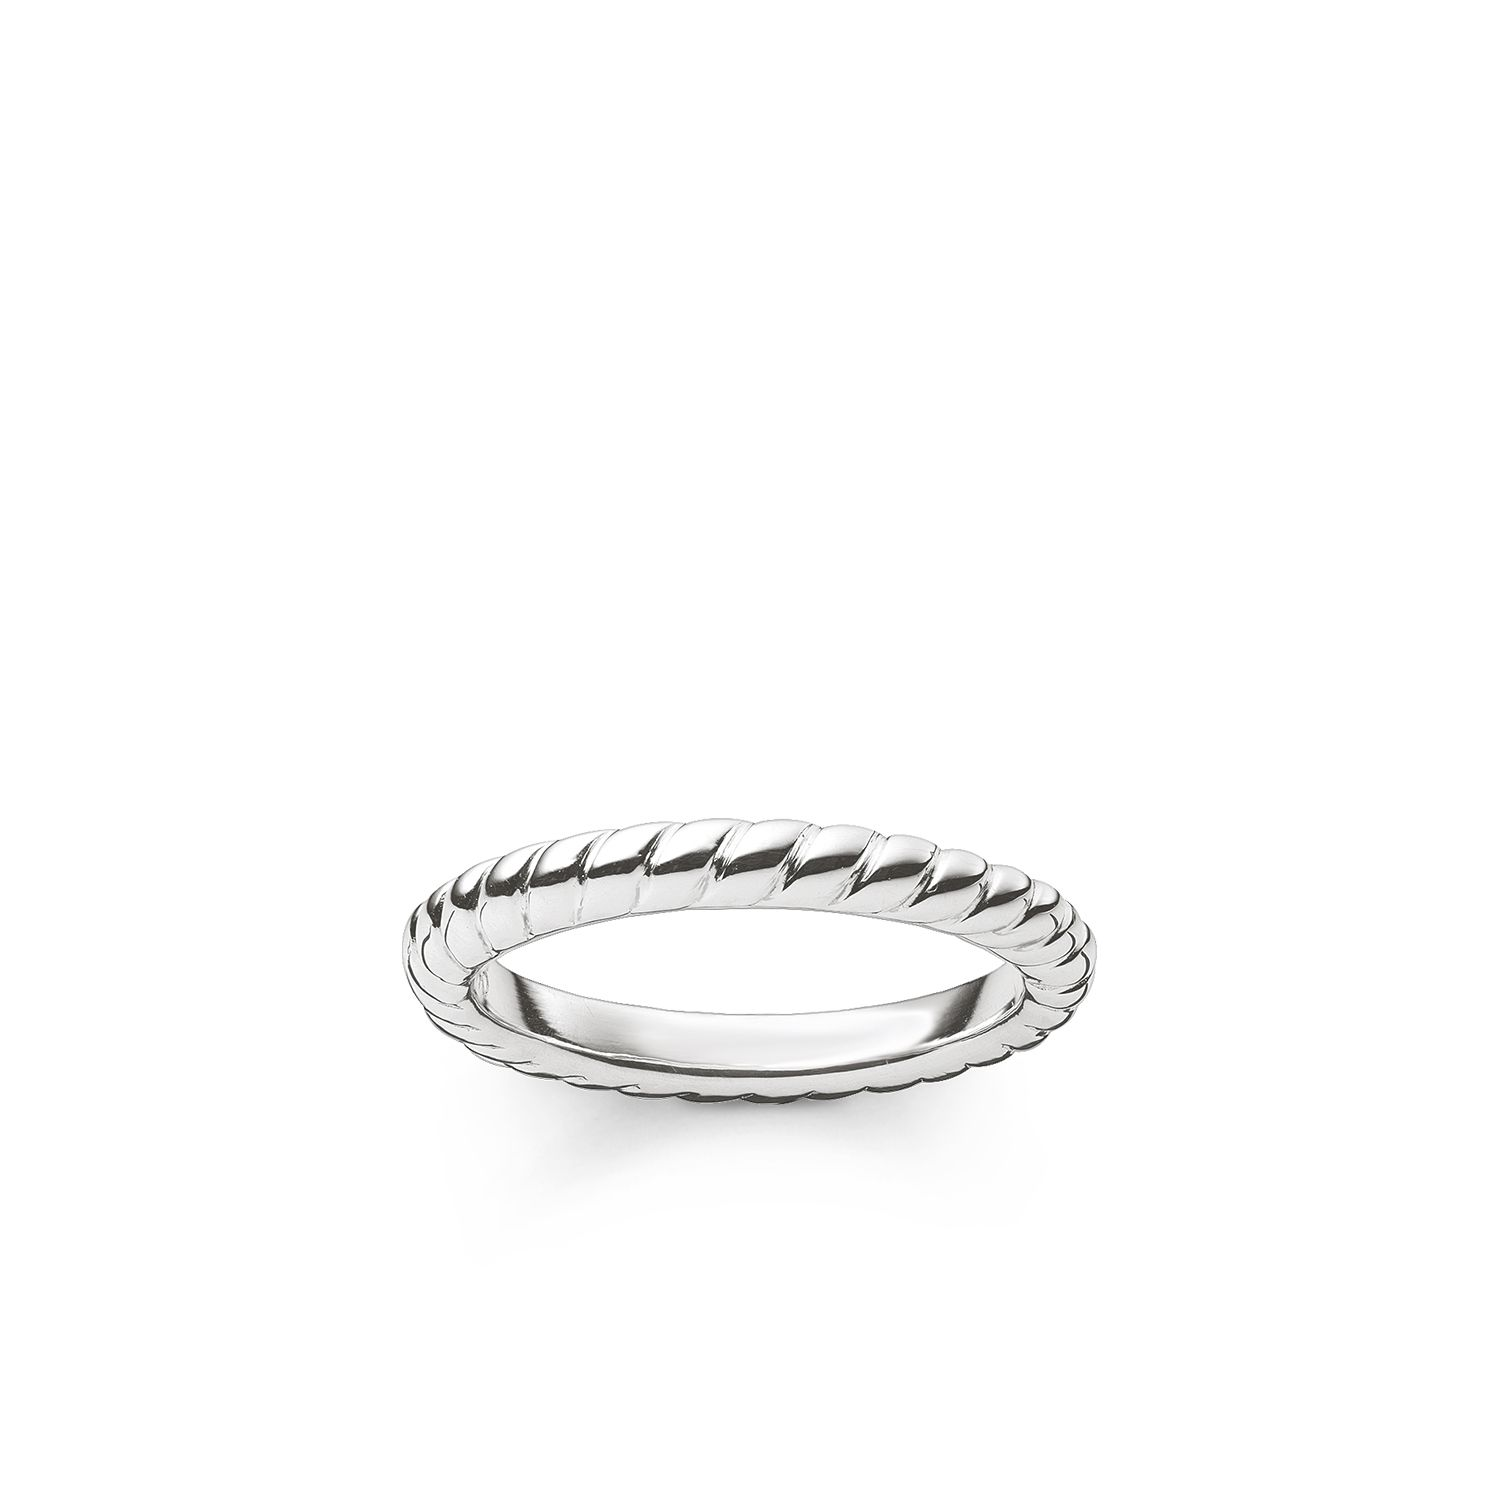 Thomas Sabo My rings roped ring, Silver